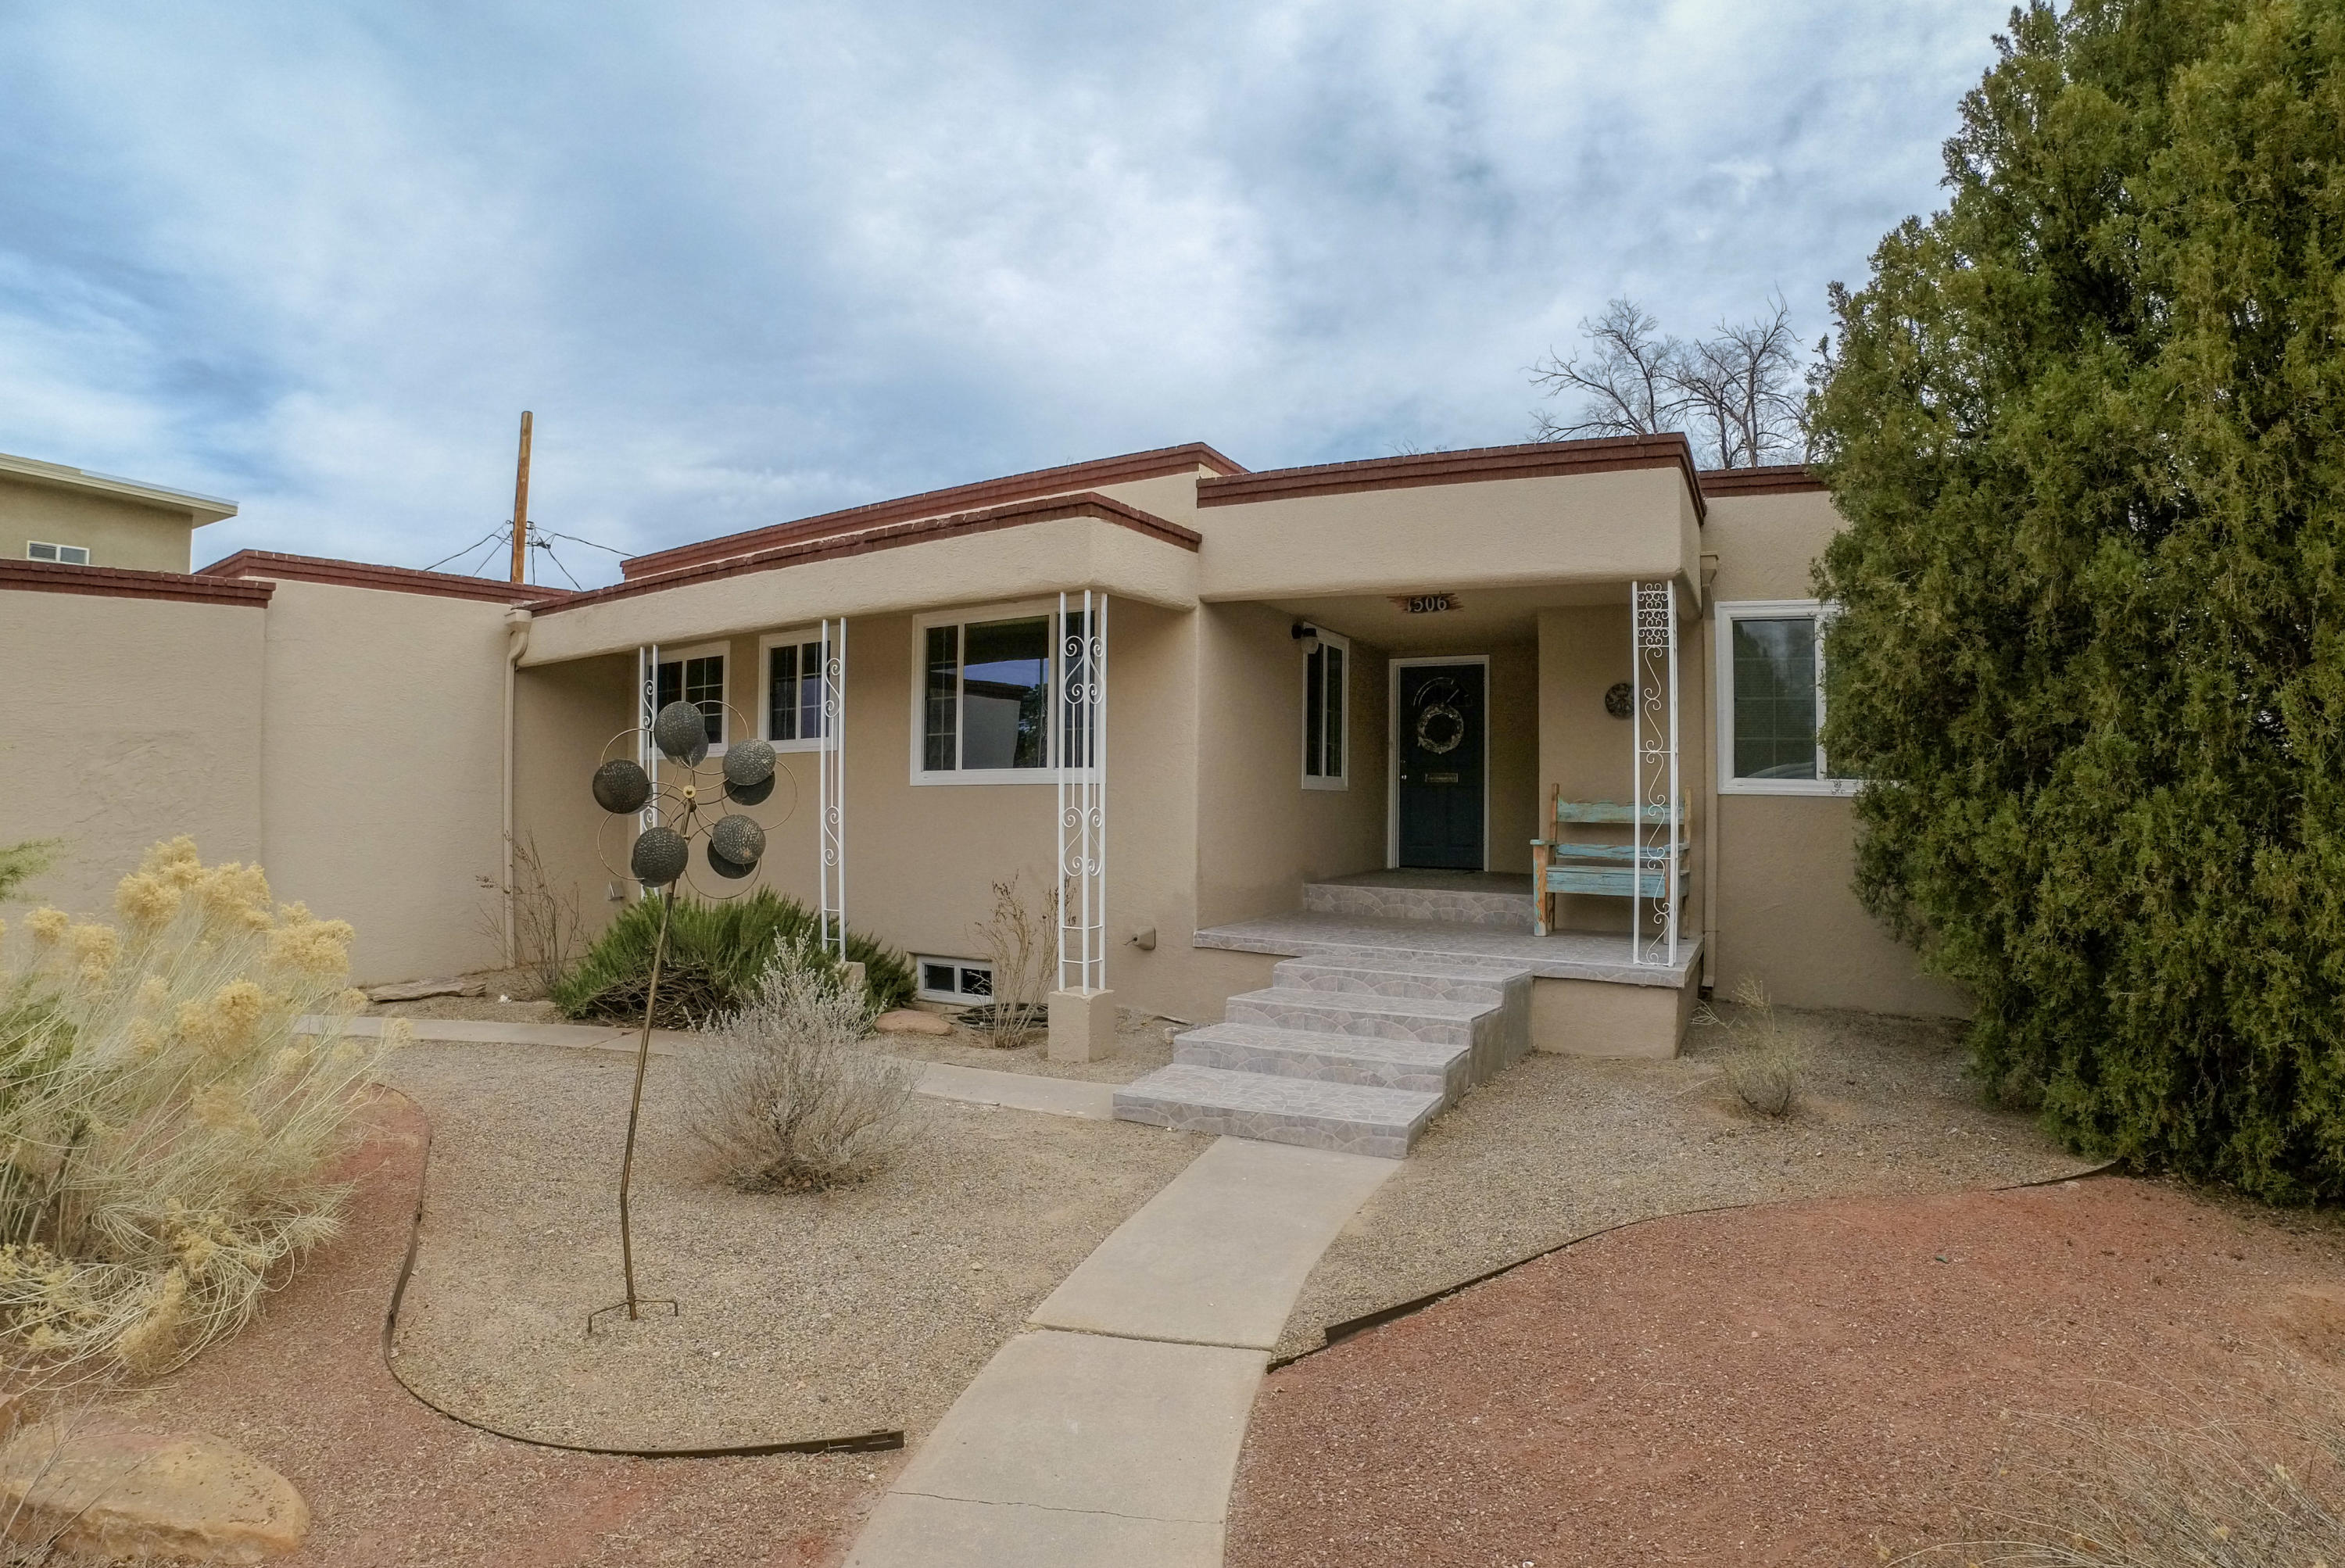 Stunning split-level mid-century-modern home in historic Netherwood Park area. Thoroughly updated and fully modernized but with vintage touches throughout. Completely remodeled kitchen including all new custom cabinetry, Corian counters and an all new suite of stainless appliances. Two large living areas plus 360 sq ft bonus room. Both baths remodeled with new tile, new cabinetry, new fixtures and new hardware. Wrap around balcony with breathtaking city and mountain views. Located on a quiet leafy cul-de-sac in a beautiful tree lined neighborhood. Walking distance to University golf course, Netherwood Park, and UNM North Campus.